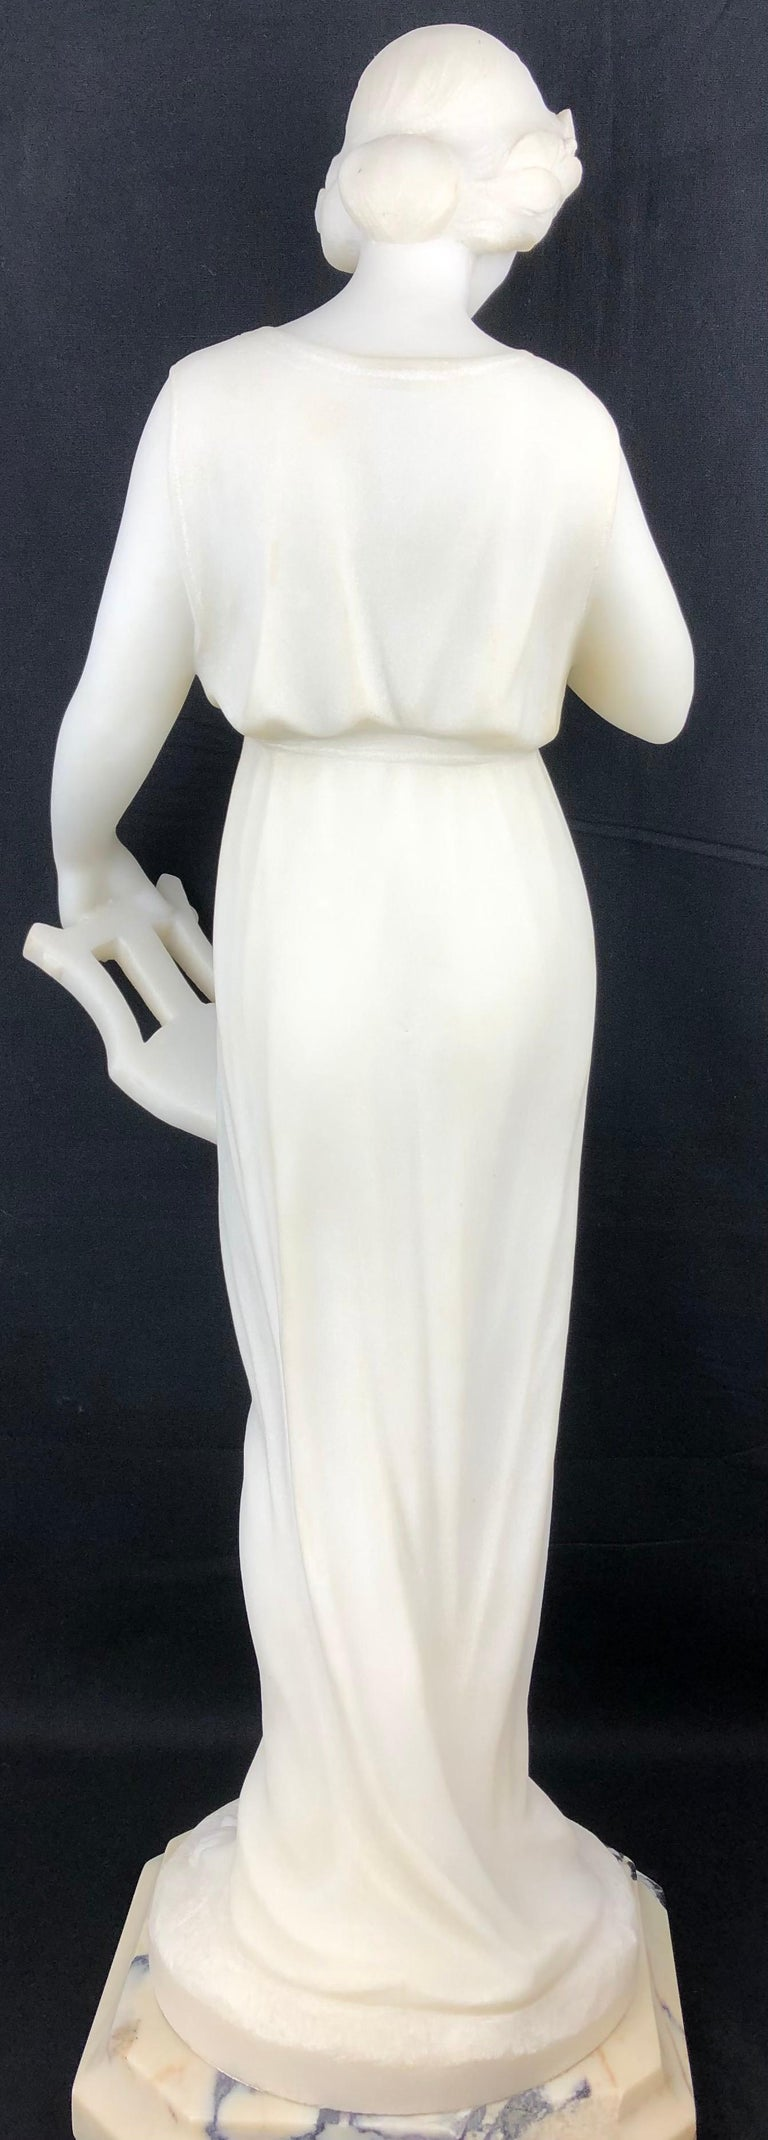 19th Century Art Nouveau White Carrara Marble Sculpture by Guglielmo Pugi Signed In Good Condition For Sale In Arles, FR